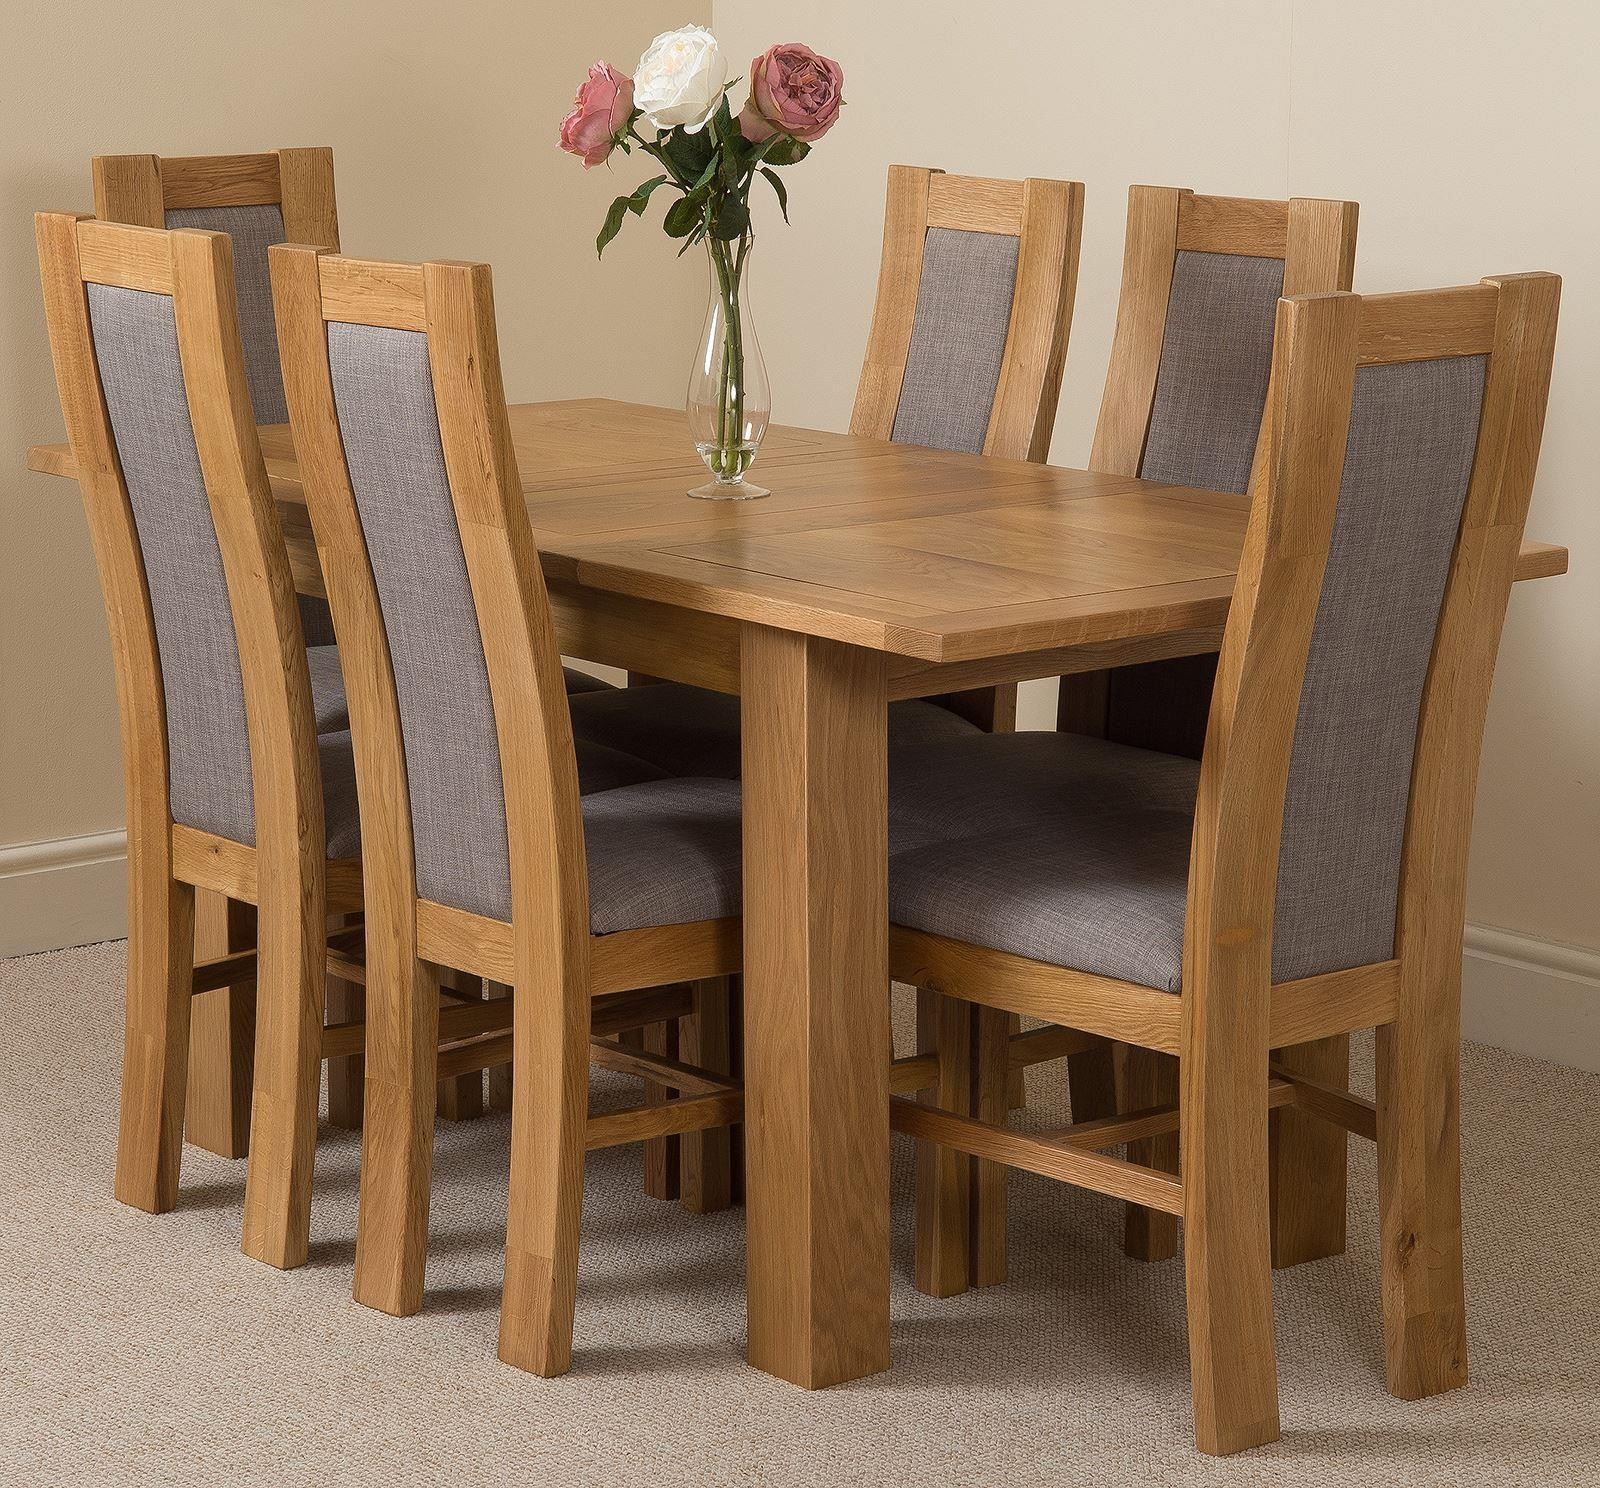 Hampton Solid Oak 120-160cm Extending Dining Table with 6 Stanford Solid Oak Dining Chairs [Light Oak and Grey Fabric]